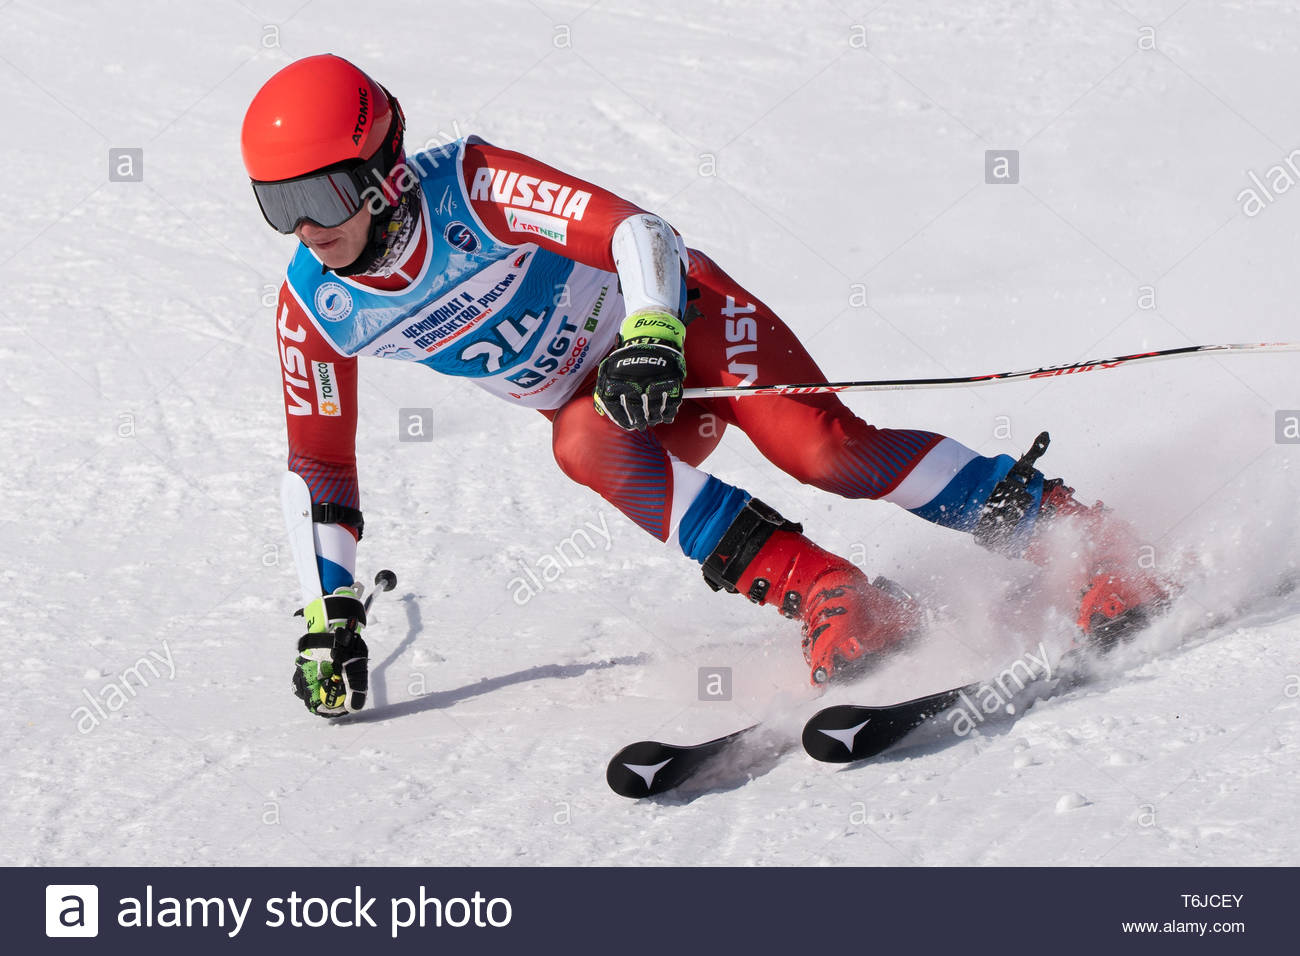 KAMCHATKA PENINSULA, RUSSIA - APR 1, 2019: Mountain skier Osipov Vladislav (Sakhalin) skiing down mount slope. Russian Alpine Skiing Cup, Internationa - Stock Image